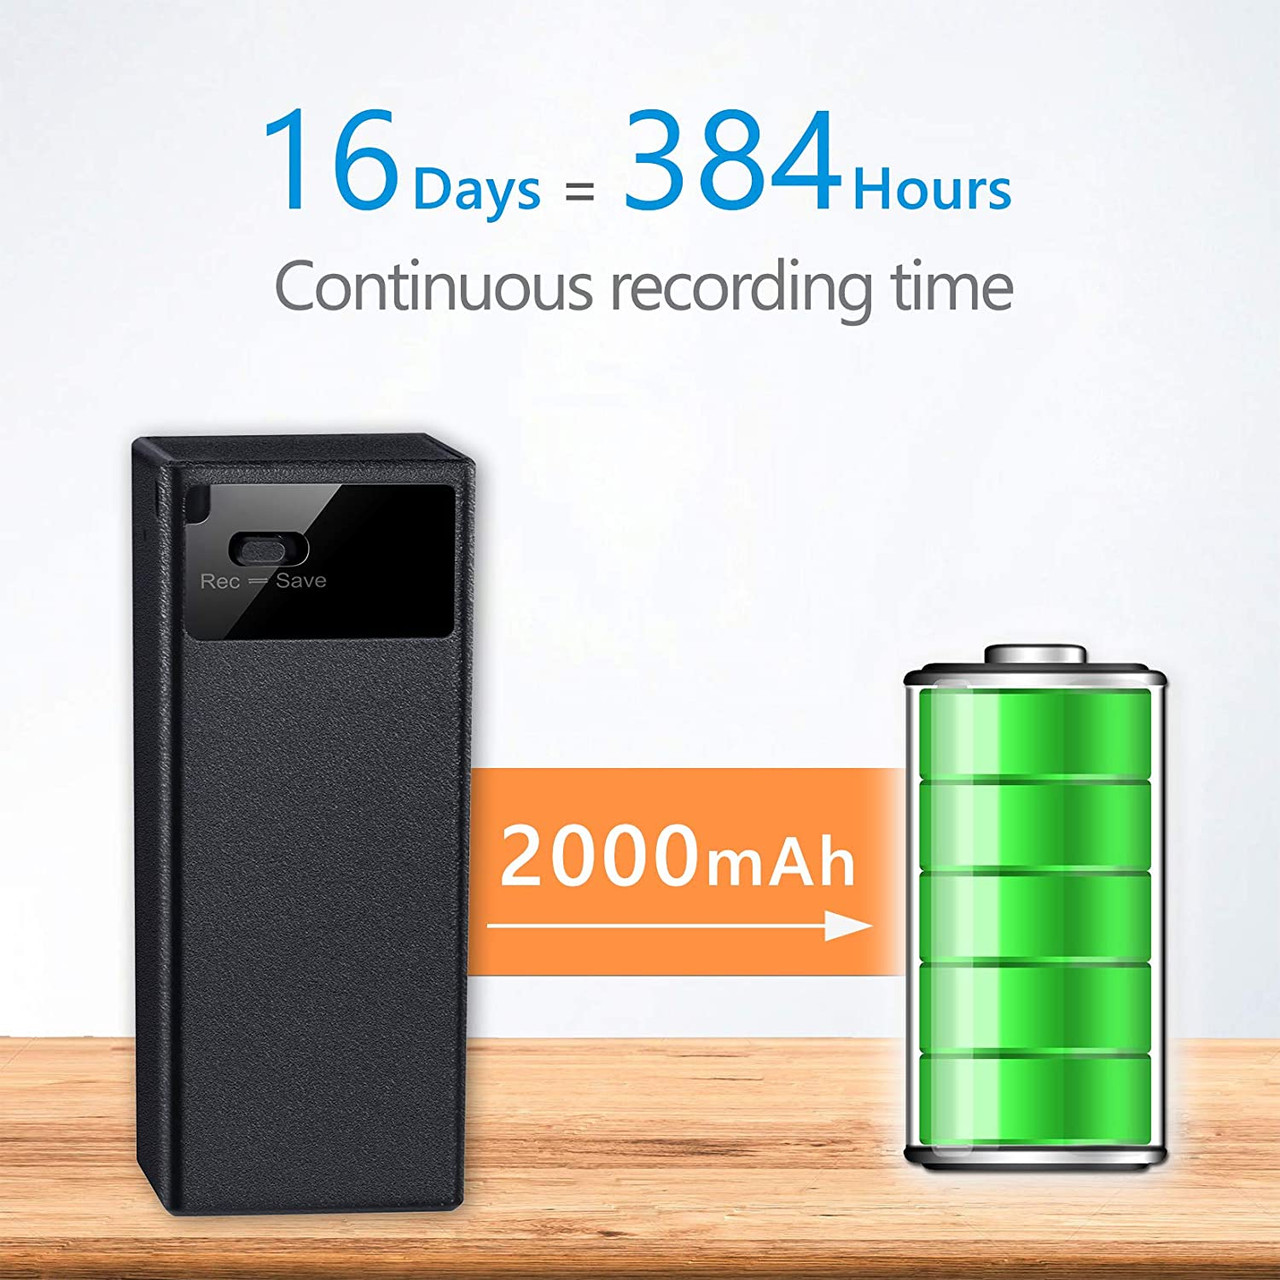 64GB Small Voice Recorder with 365 Days Standby, 16 Days Recording Time and 750 Hours Storage Capacity, Long Battery Life Audio Recorder with and Playback Earphone